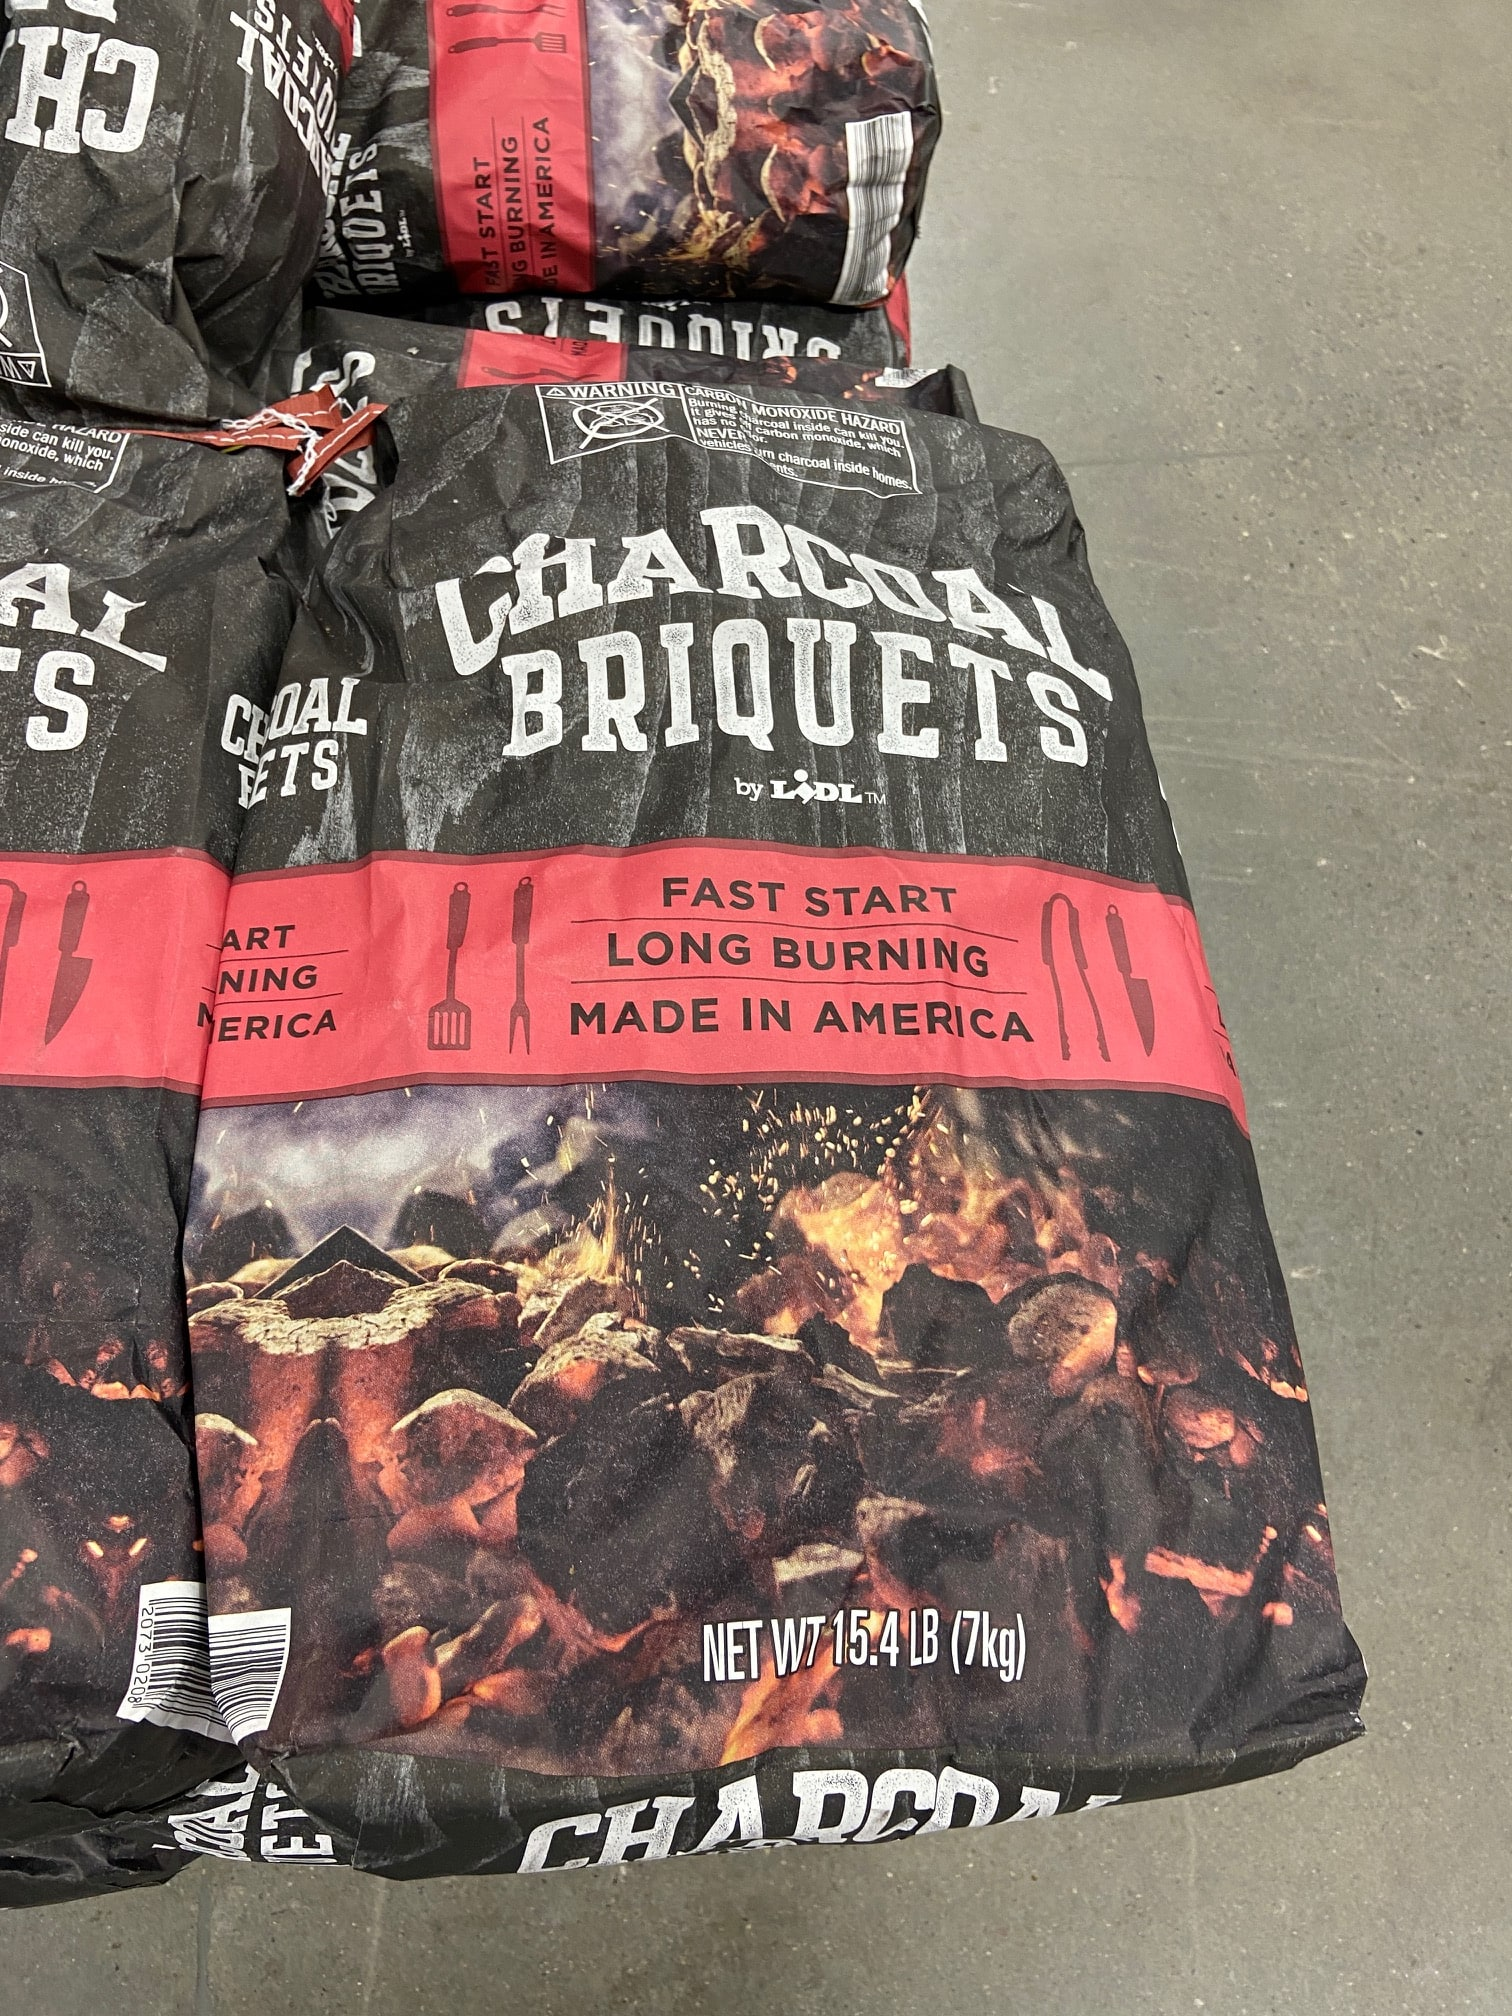 Lidl Store brand Charcoal Briquets 15.4lbs $2.89